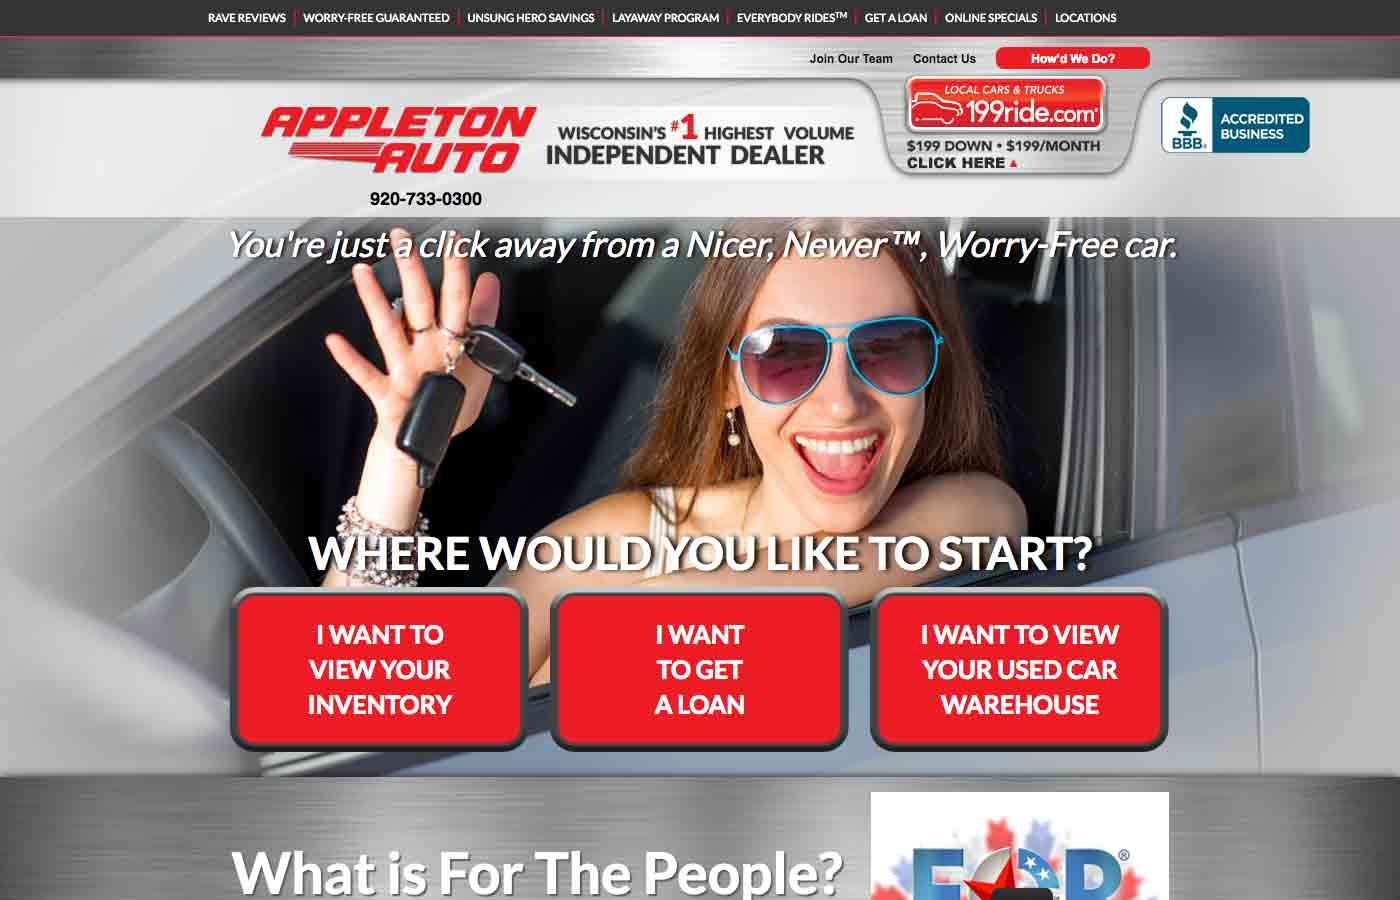 appleton auto dealership website